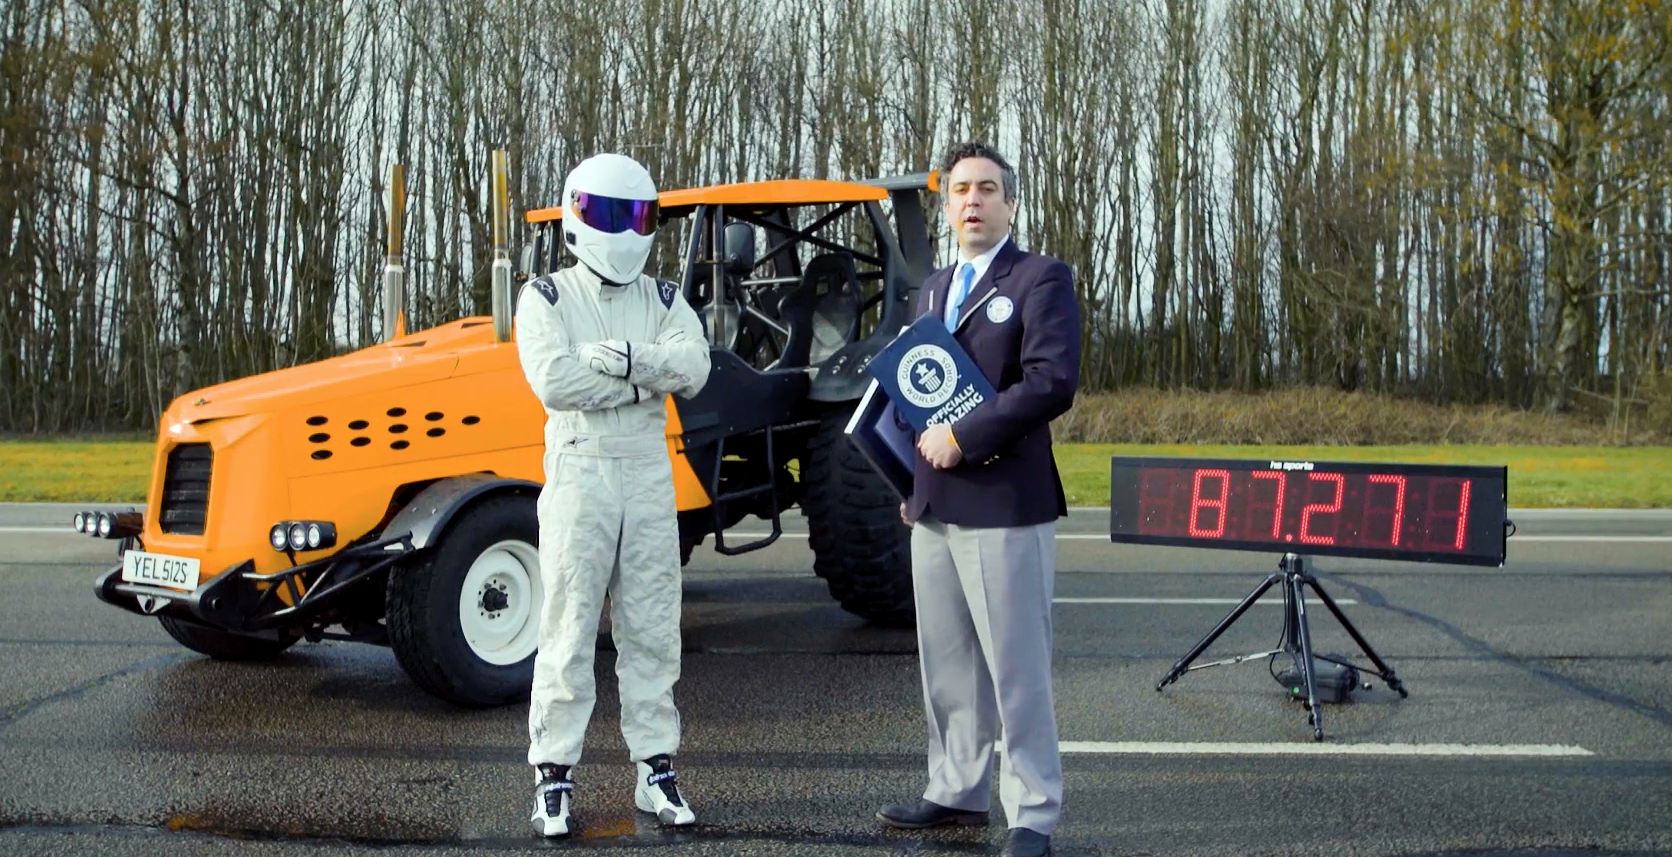 Top Gear's Stig sets Guinness World Record for fastest tractor